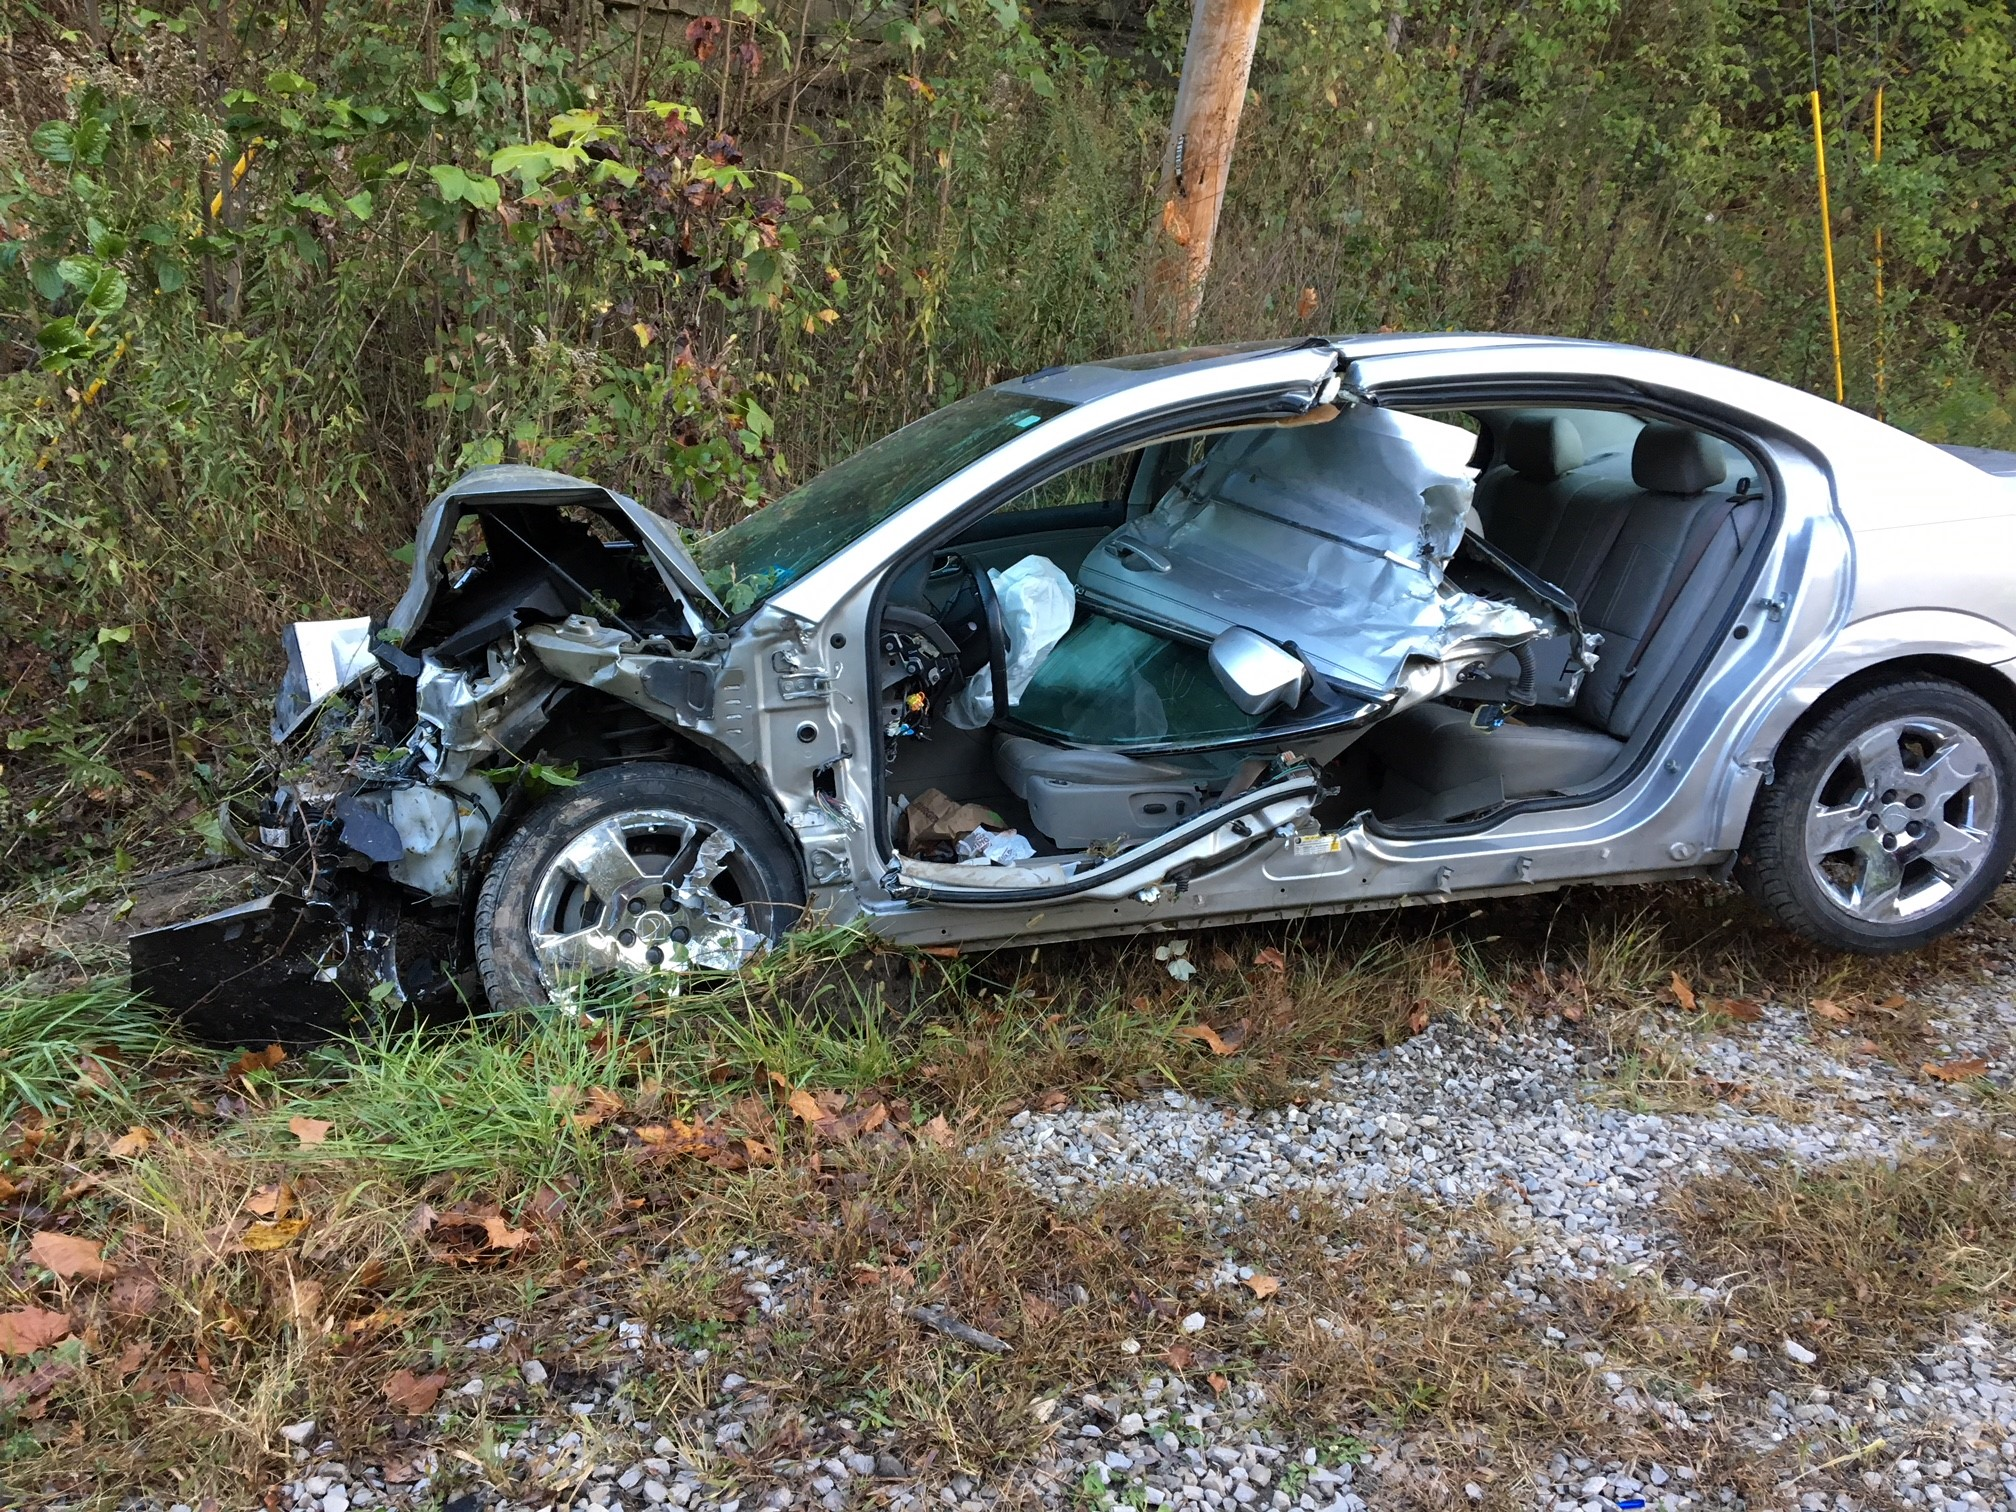 The Saturn traveled 85 feet heading back into its correct lane after striking a truck and braked about 90 feet before hitting a ditch, police said. (WCHS/WVAH){&amp;nbsp;}{&amp;nbsp;}<p></p>